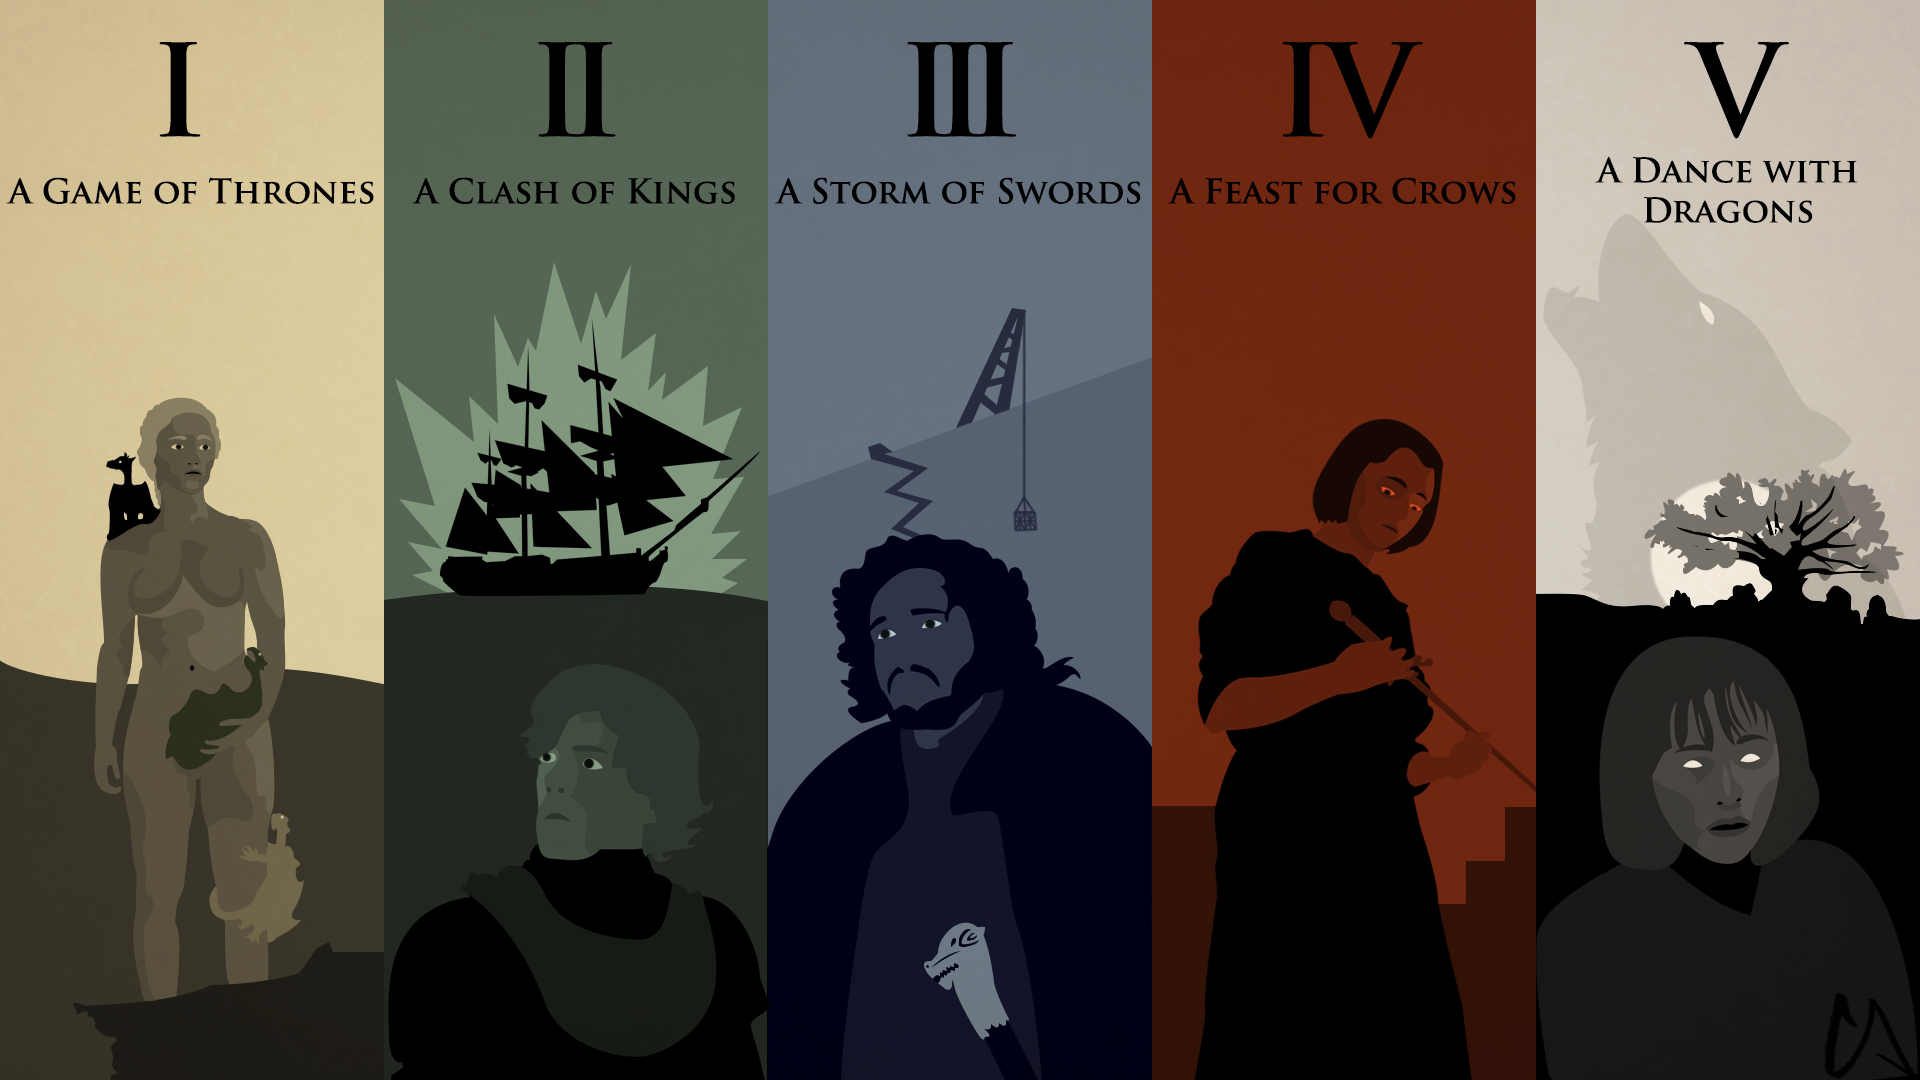 Song of Ice and Fire Wallpaper by Conkoon 1920x1080